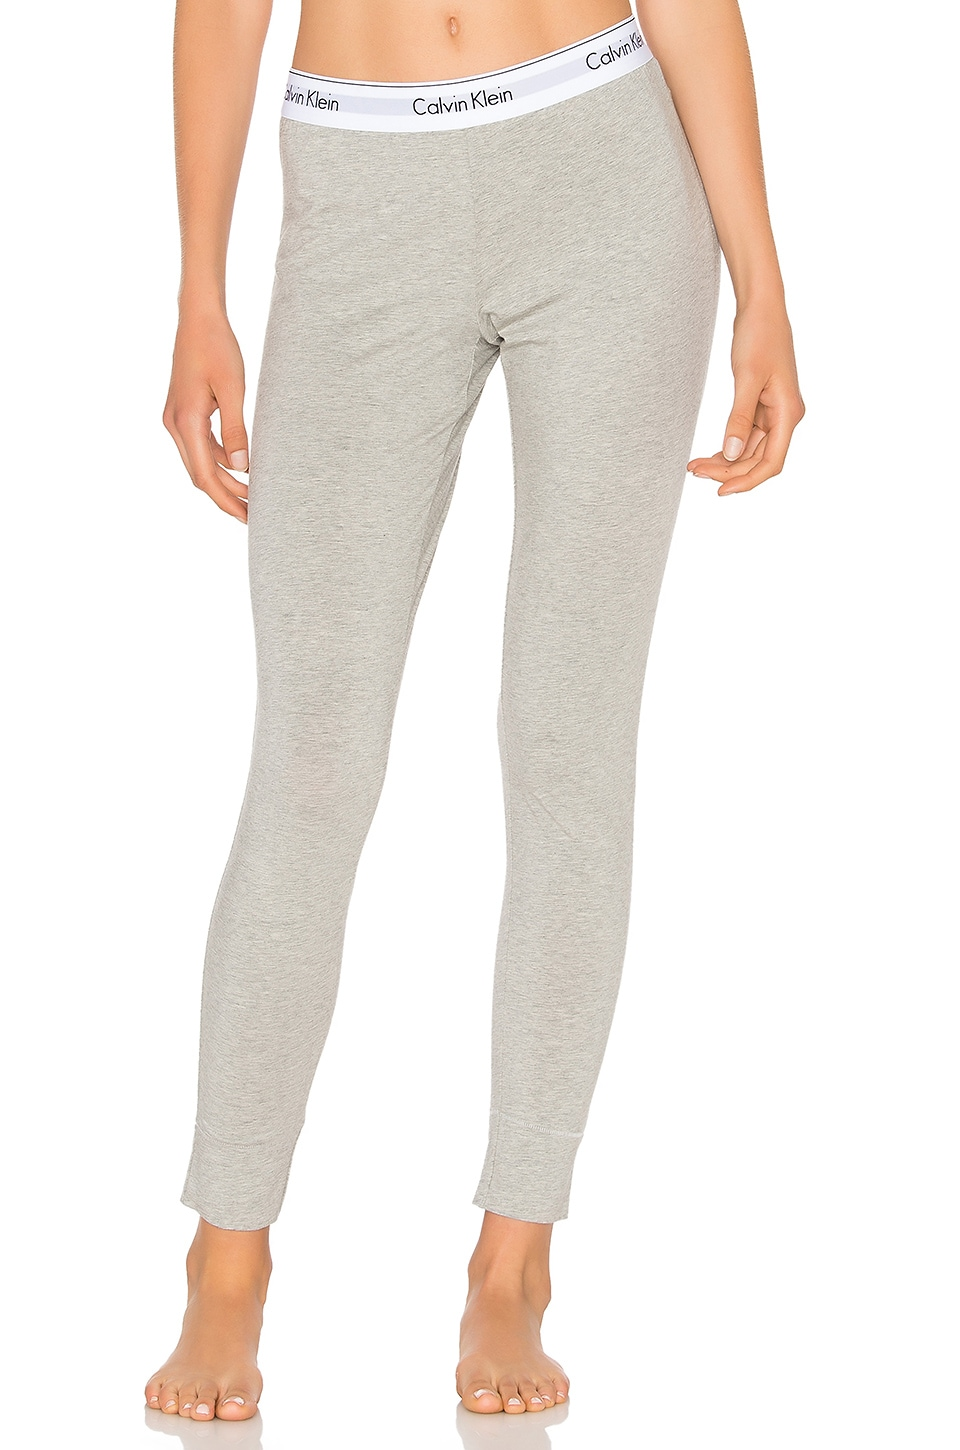 Calvin Klein Underwear Modern Cotton Legging in Grey Heather